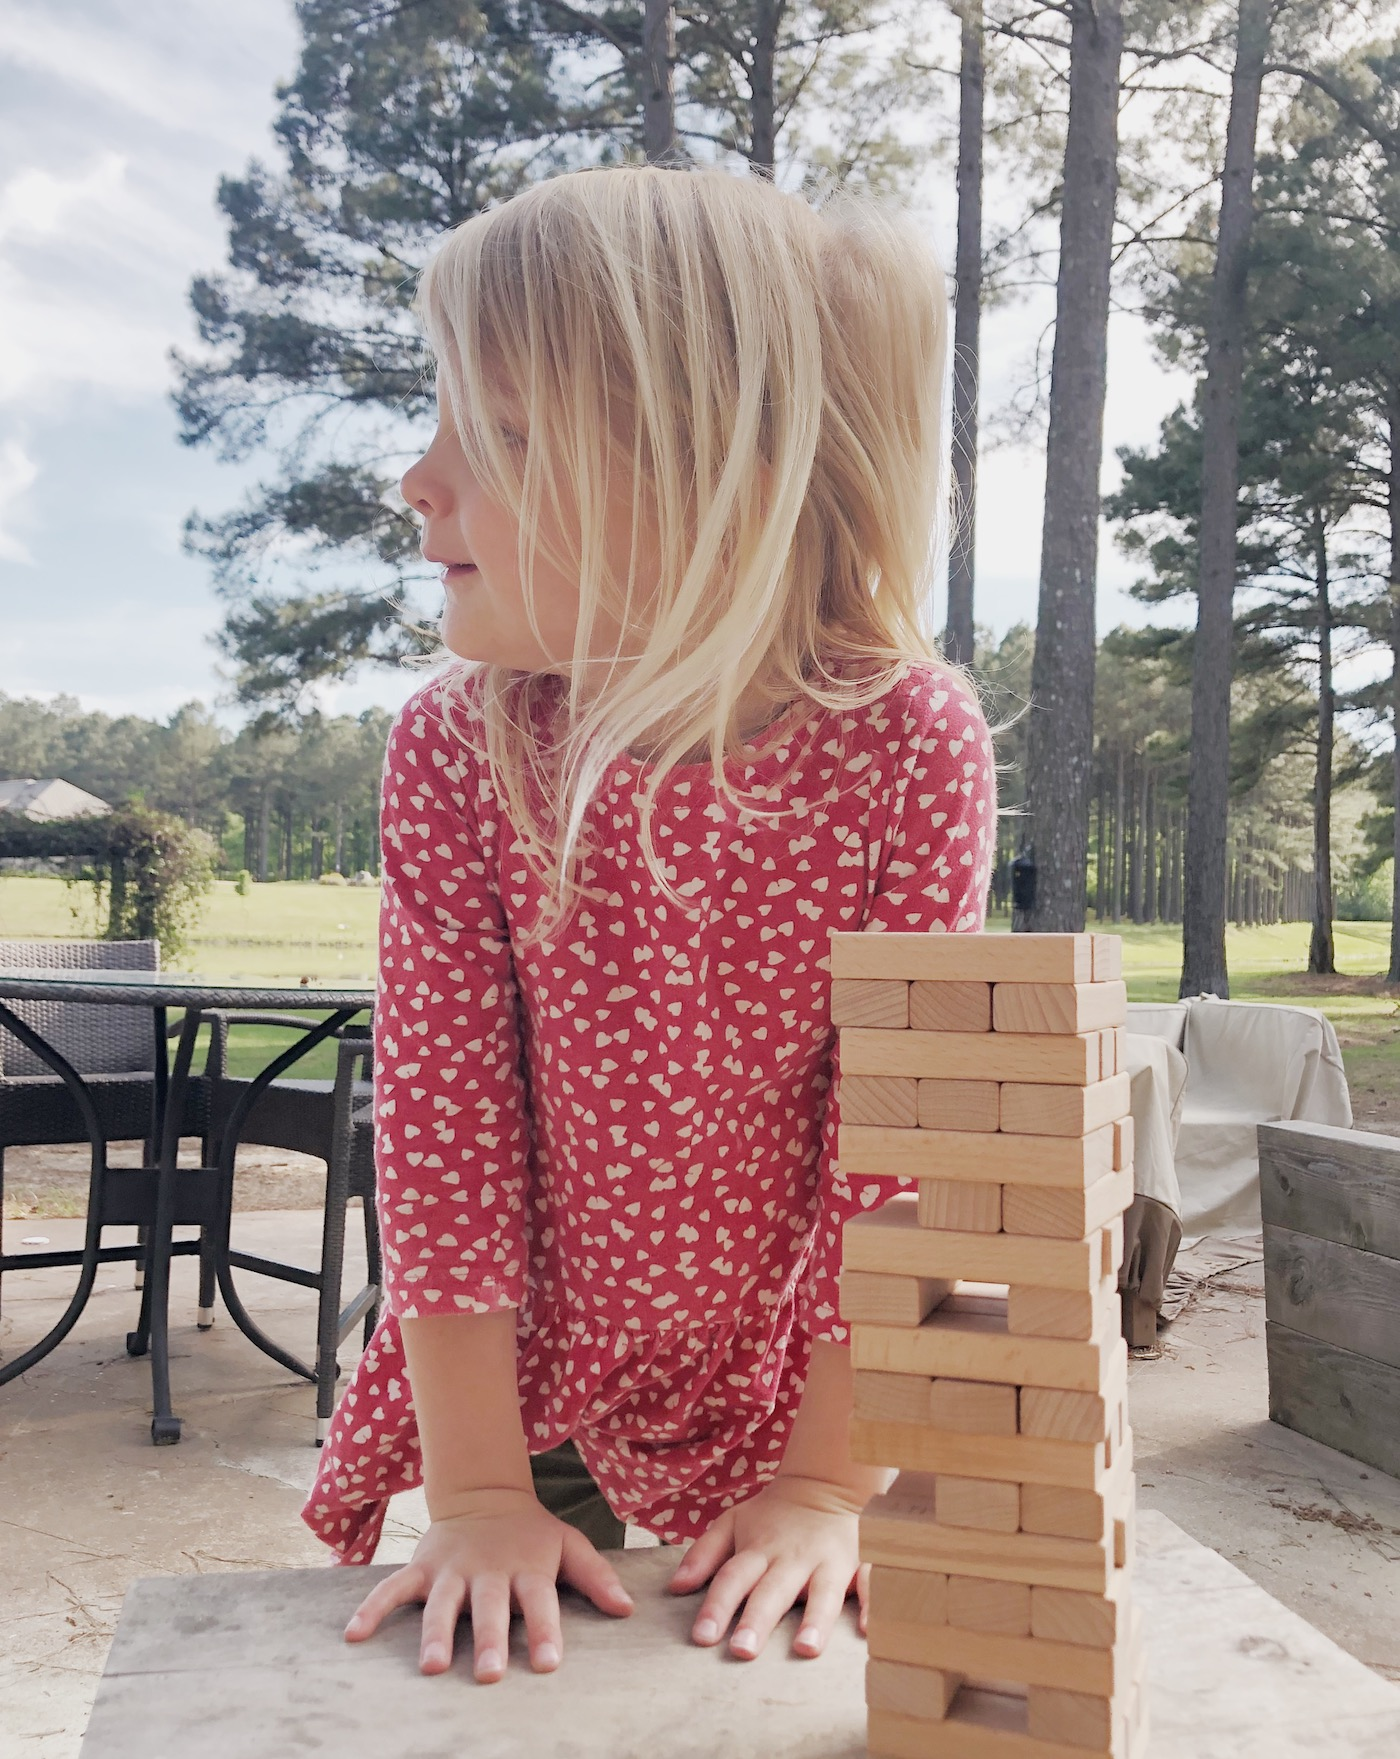 Questions to put on a Jenga set to play with your family!